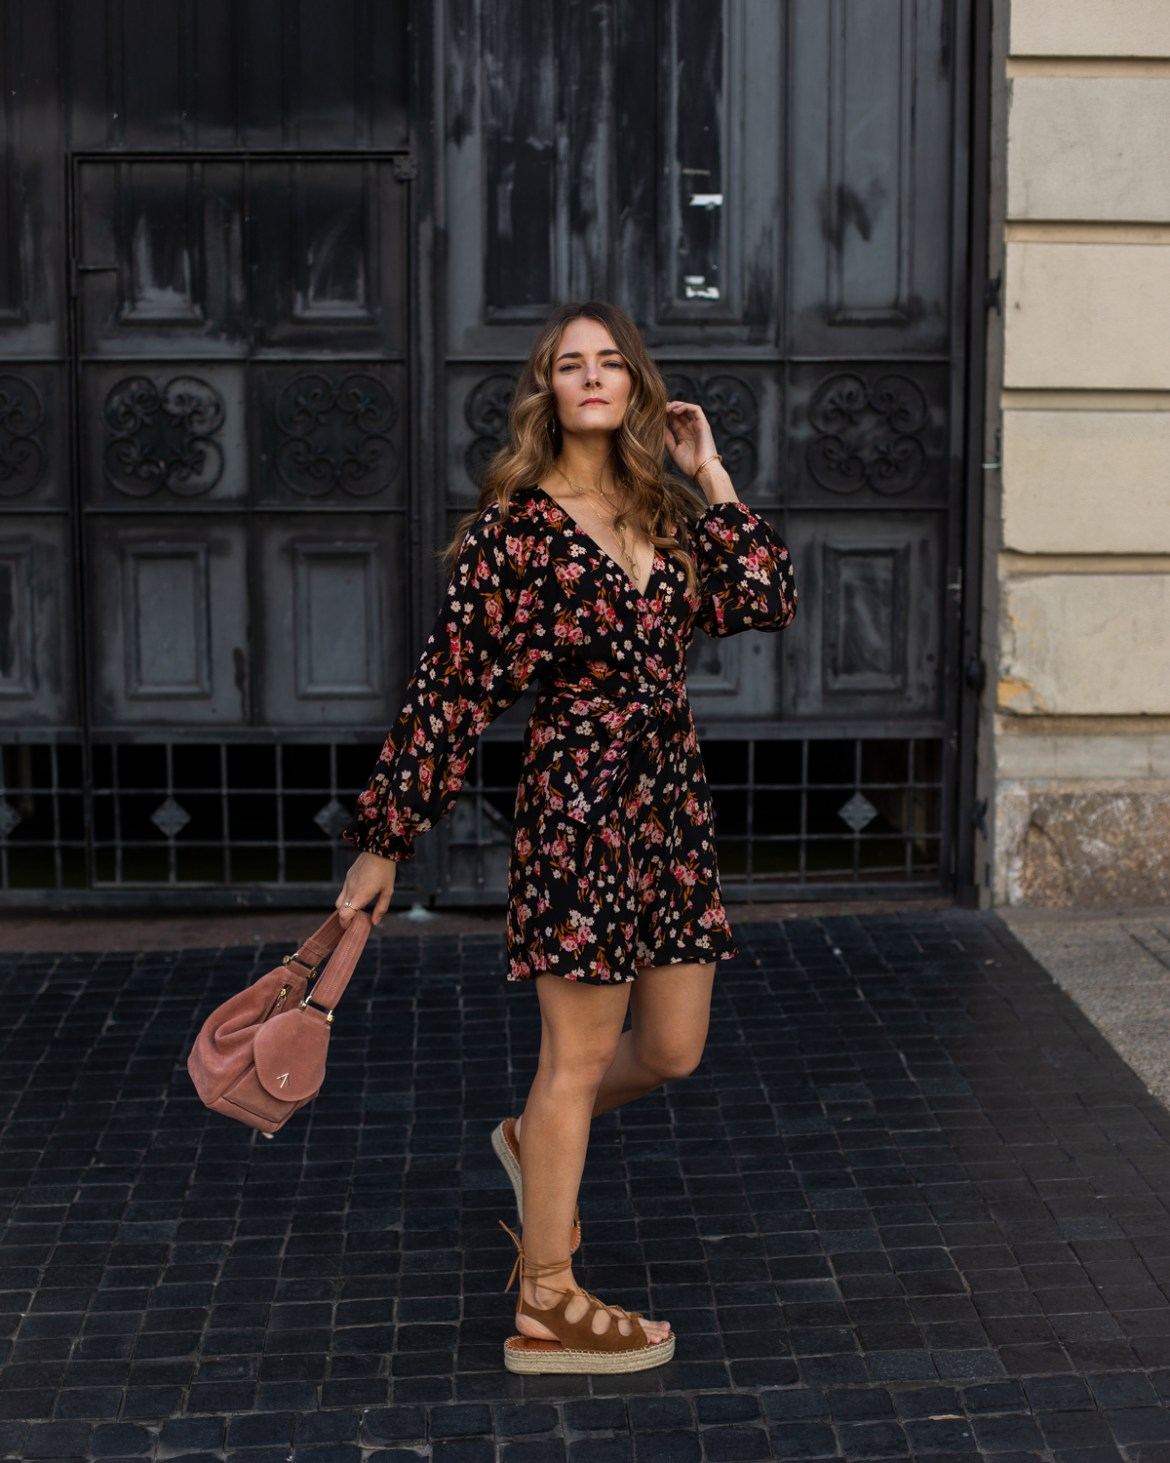 A.L.C. dress and Alohas Sandals worn by fashion and travel blogger Jenelle Witty from Inspiring Wit